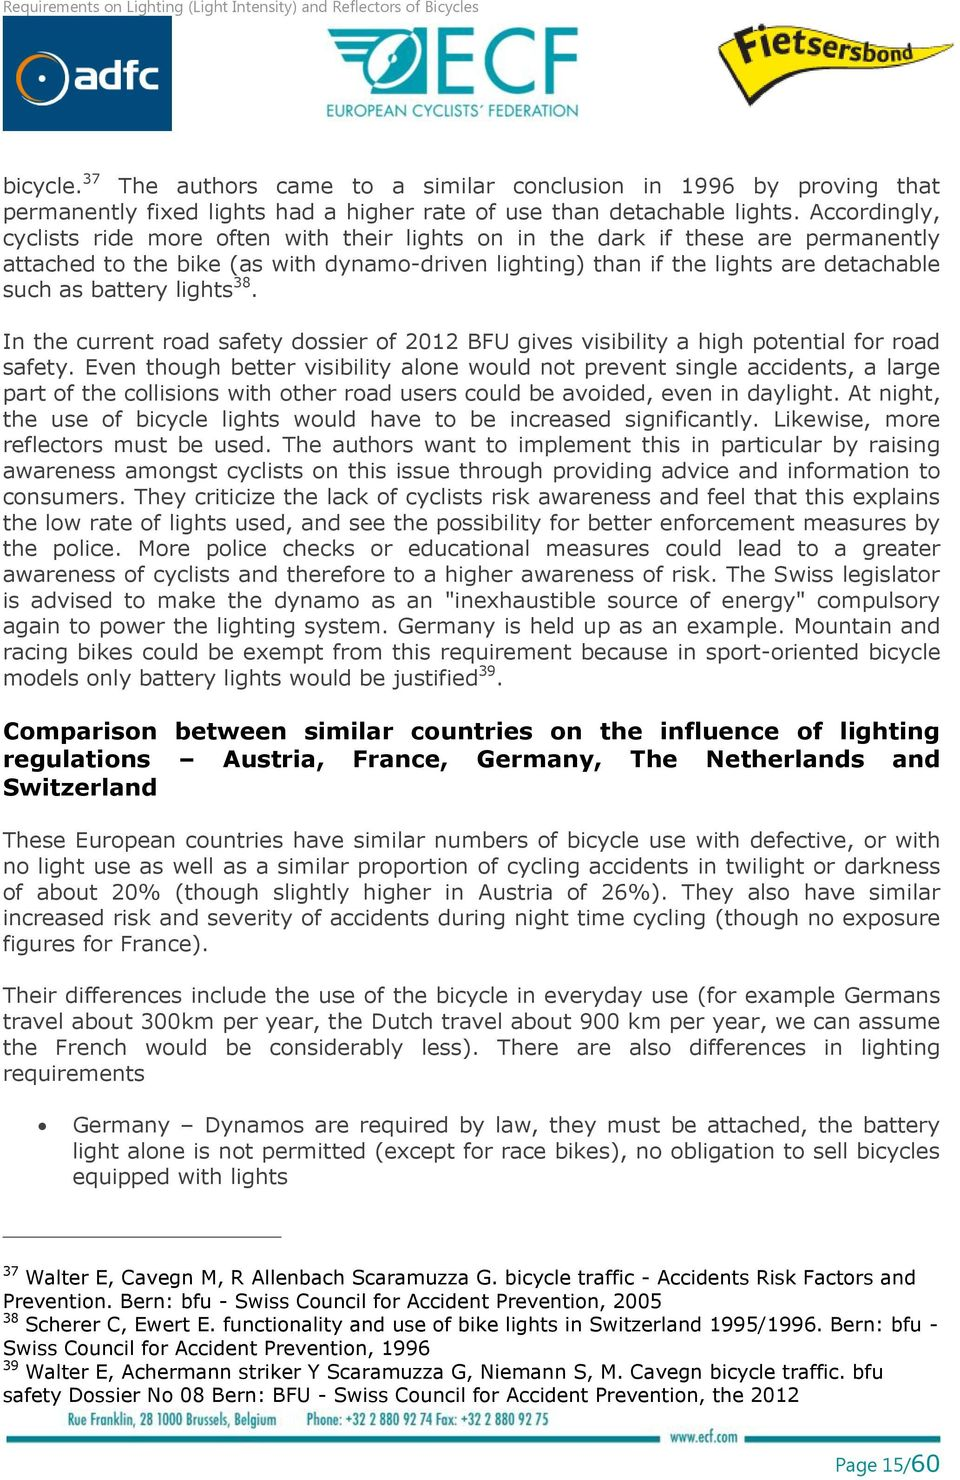 lights 38. In the current road safety dossier of 2012 BFU gives visibility a high potential for road safety.